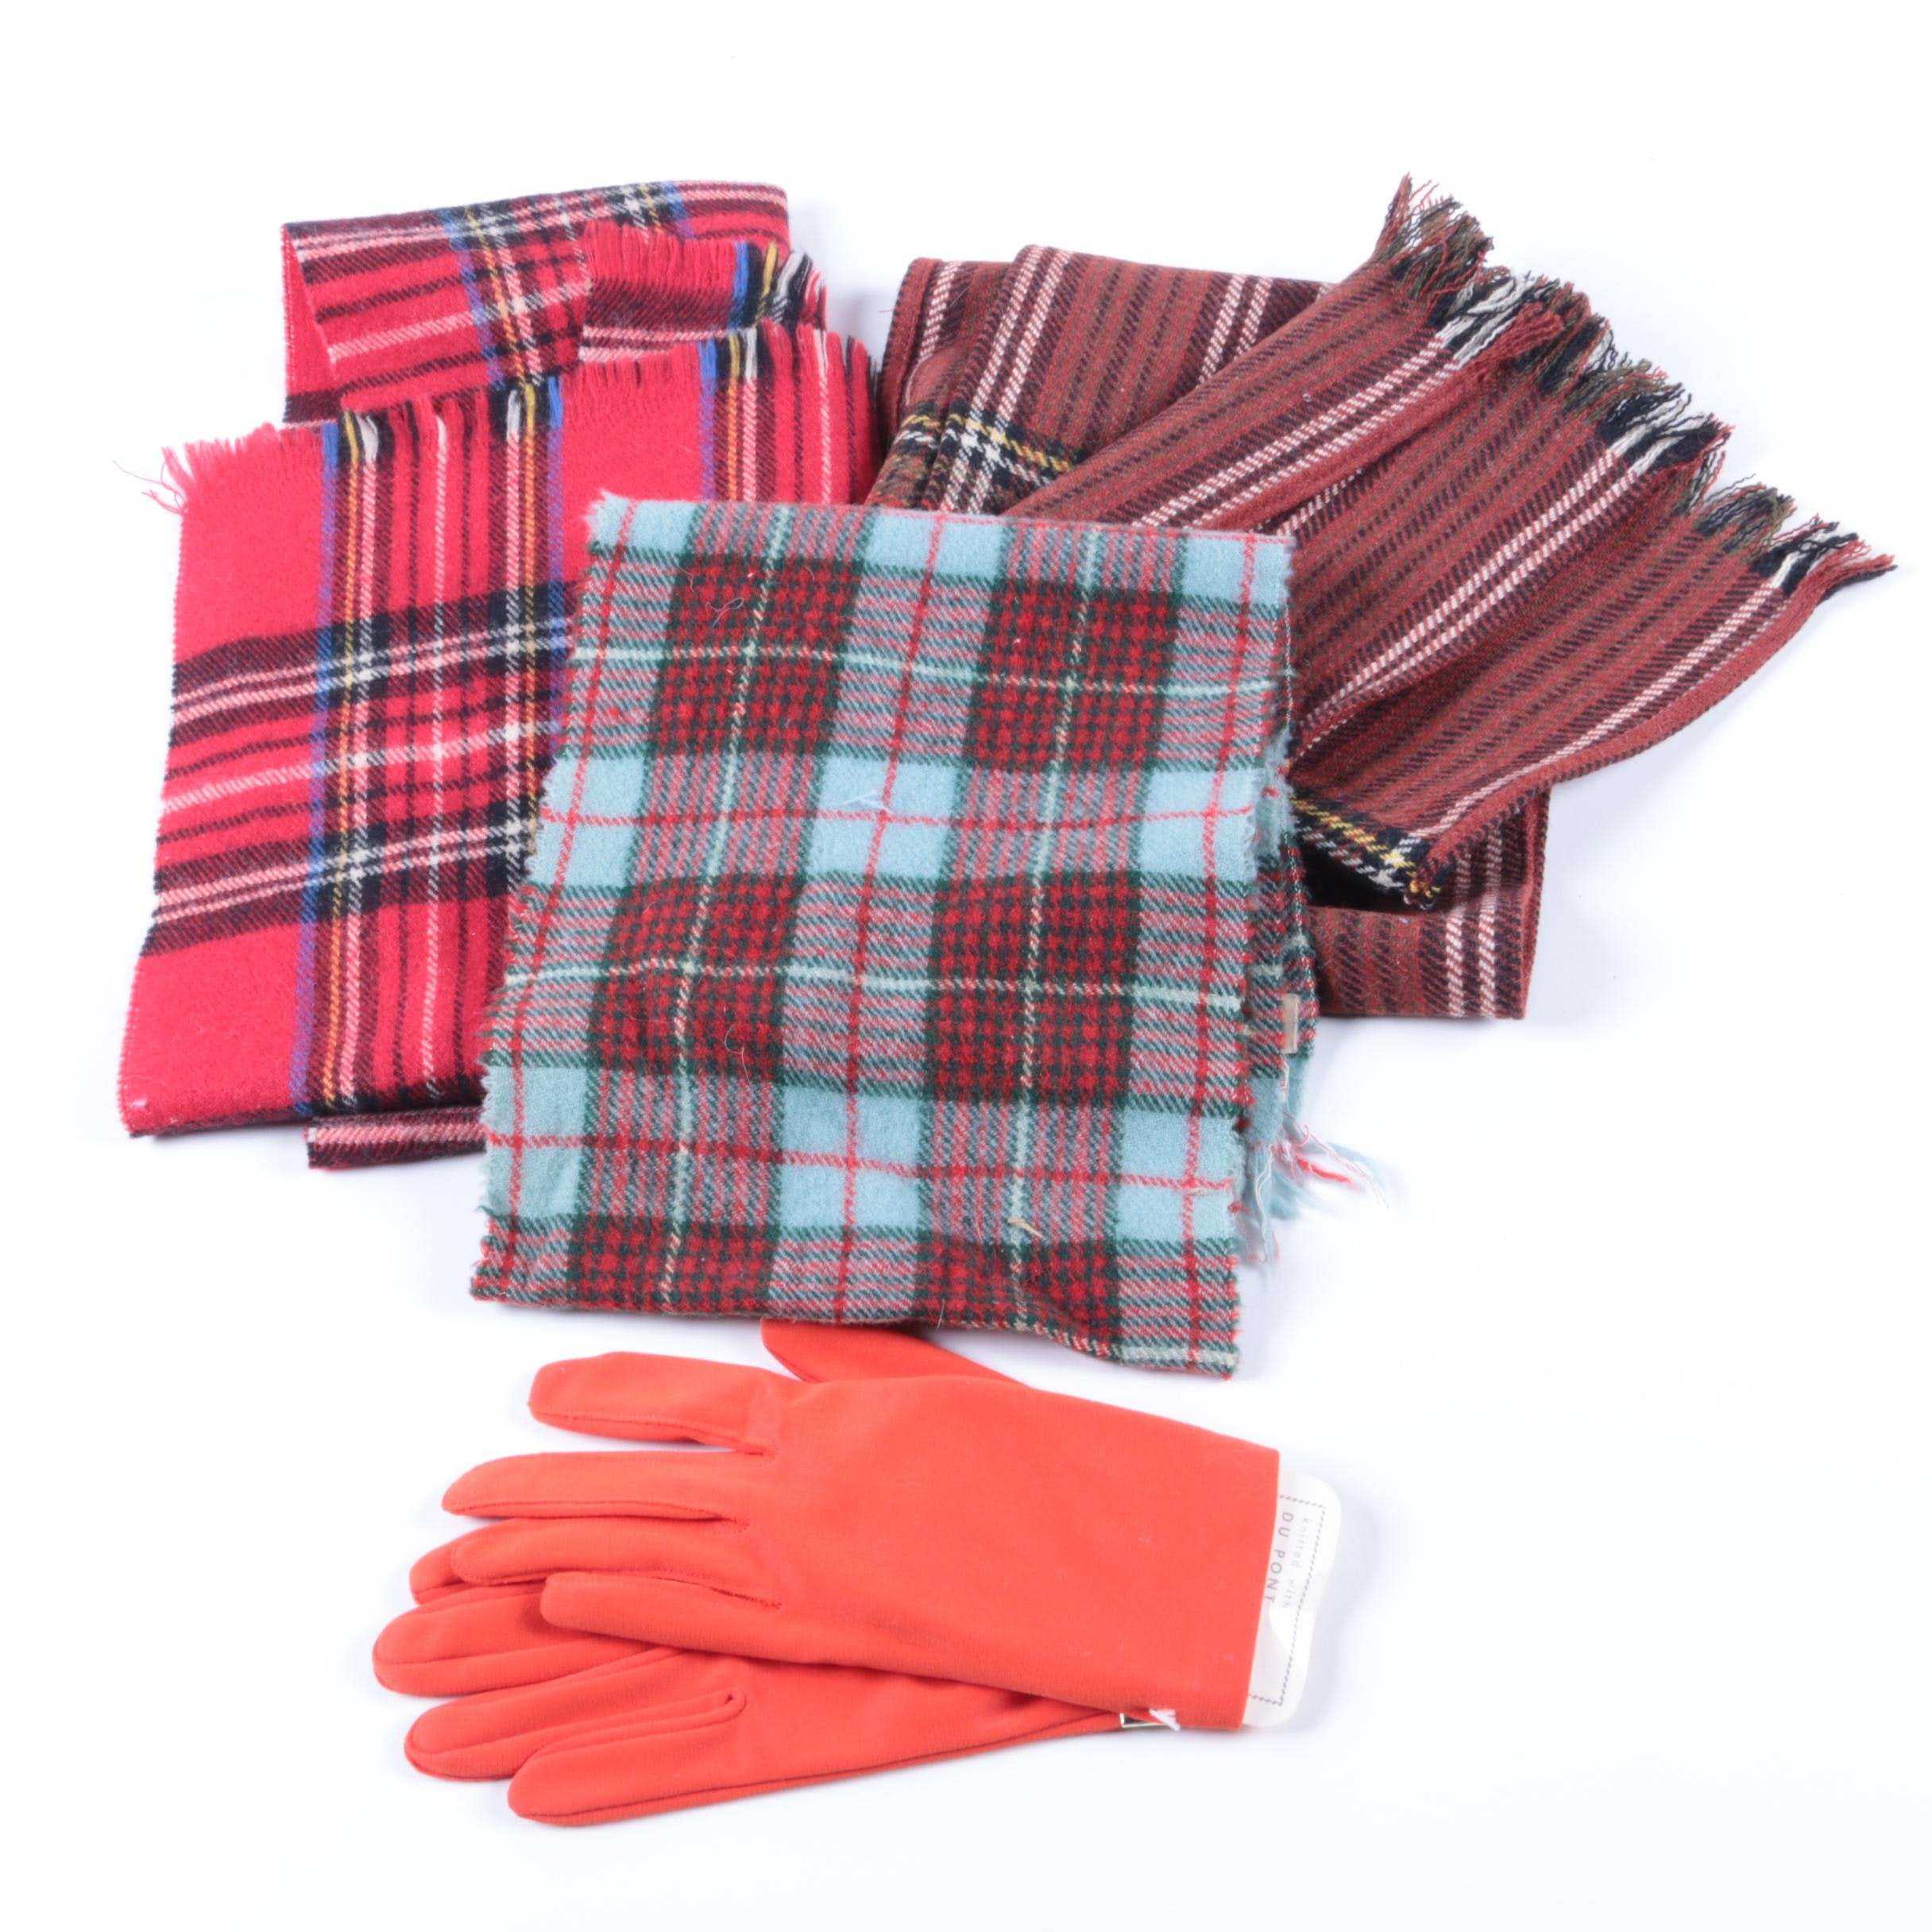 Women's Vintage Cold Weather Scarves and Pair of Gloves